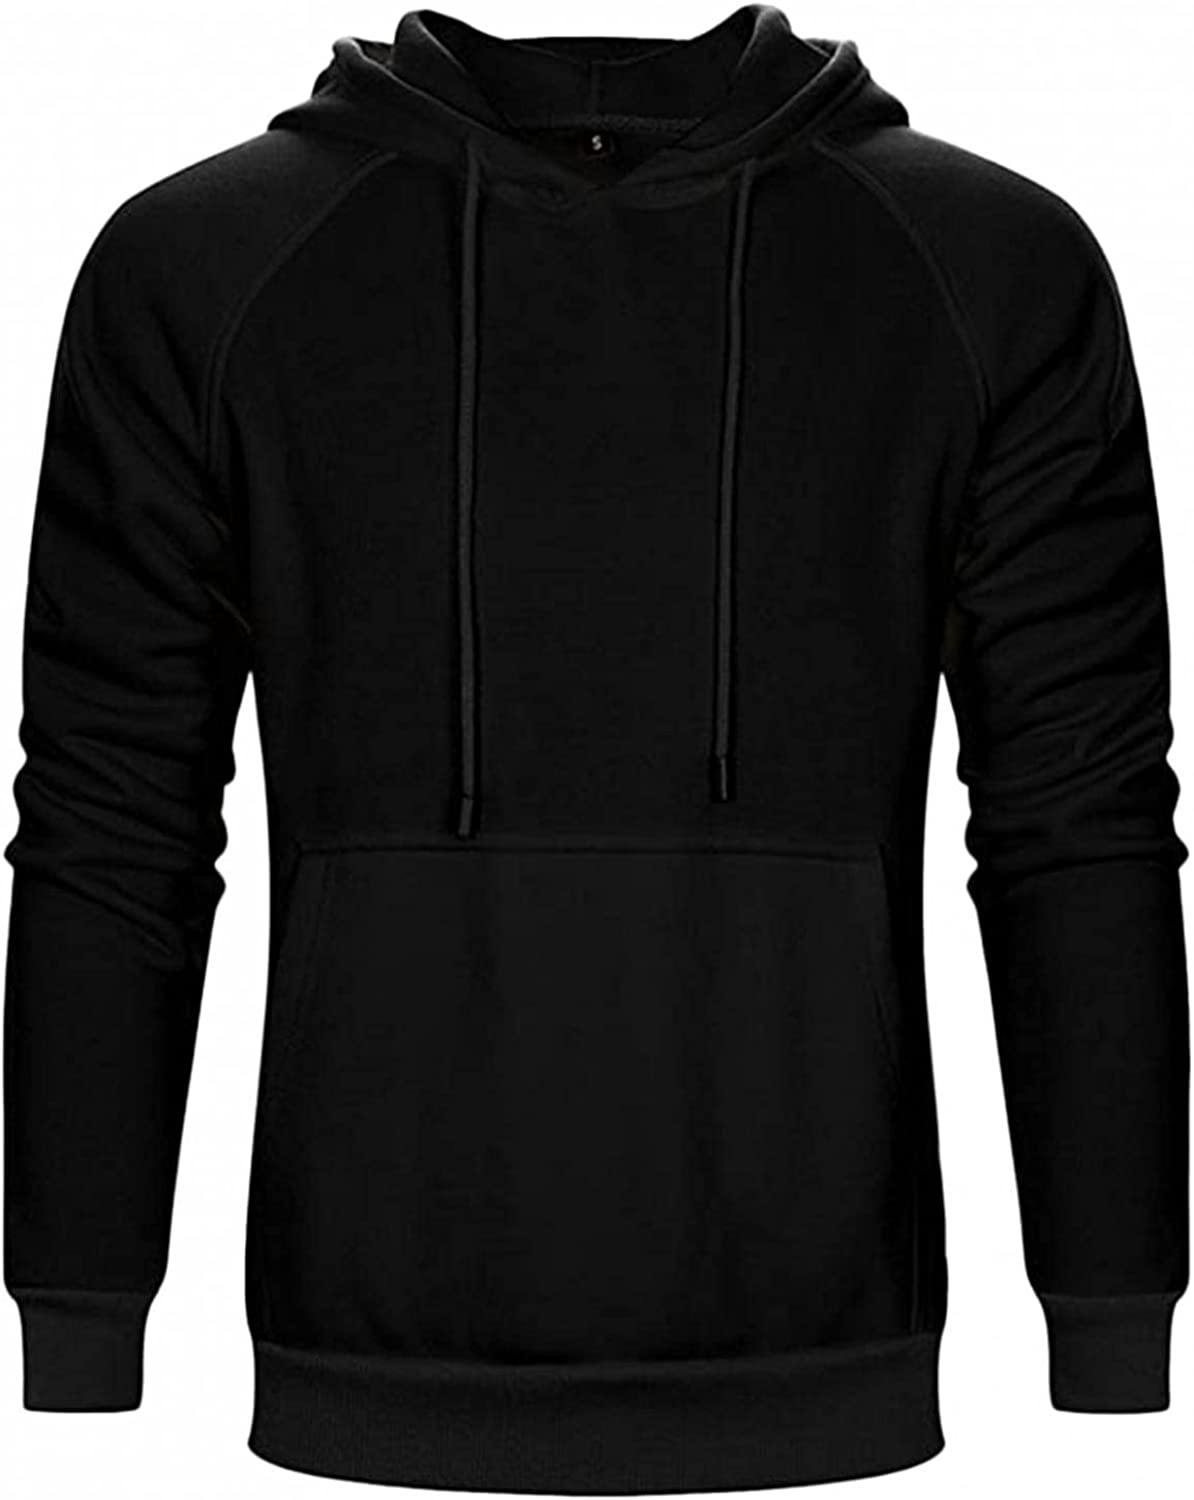 Beppter Mens Hooded Sweatershirts Solid Long Sleeve Hoodies Pullover Casual Fashion Sports Tops Blouse with Pockets